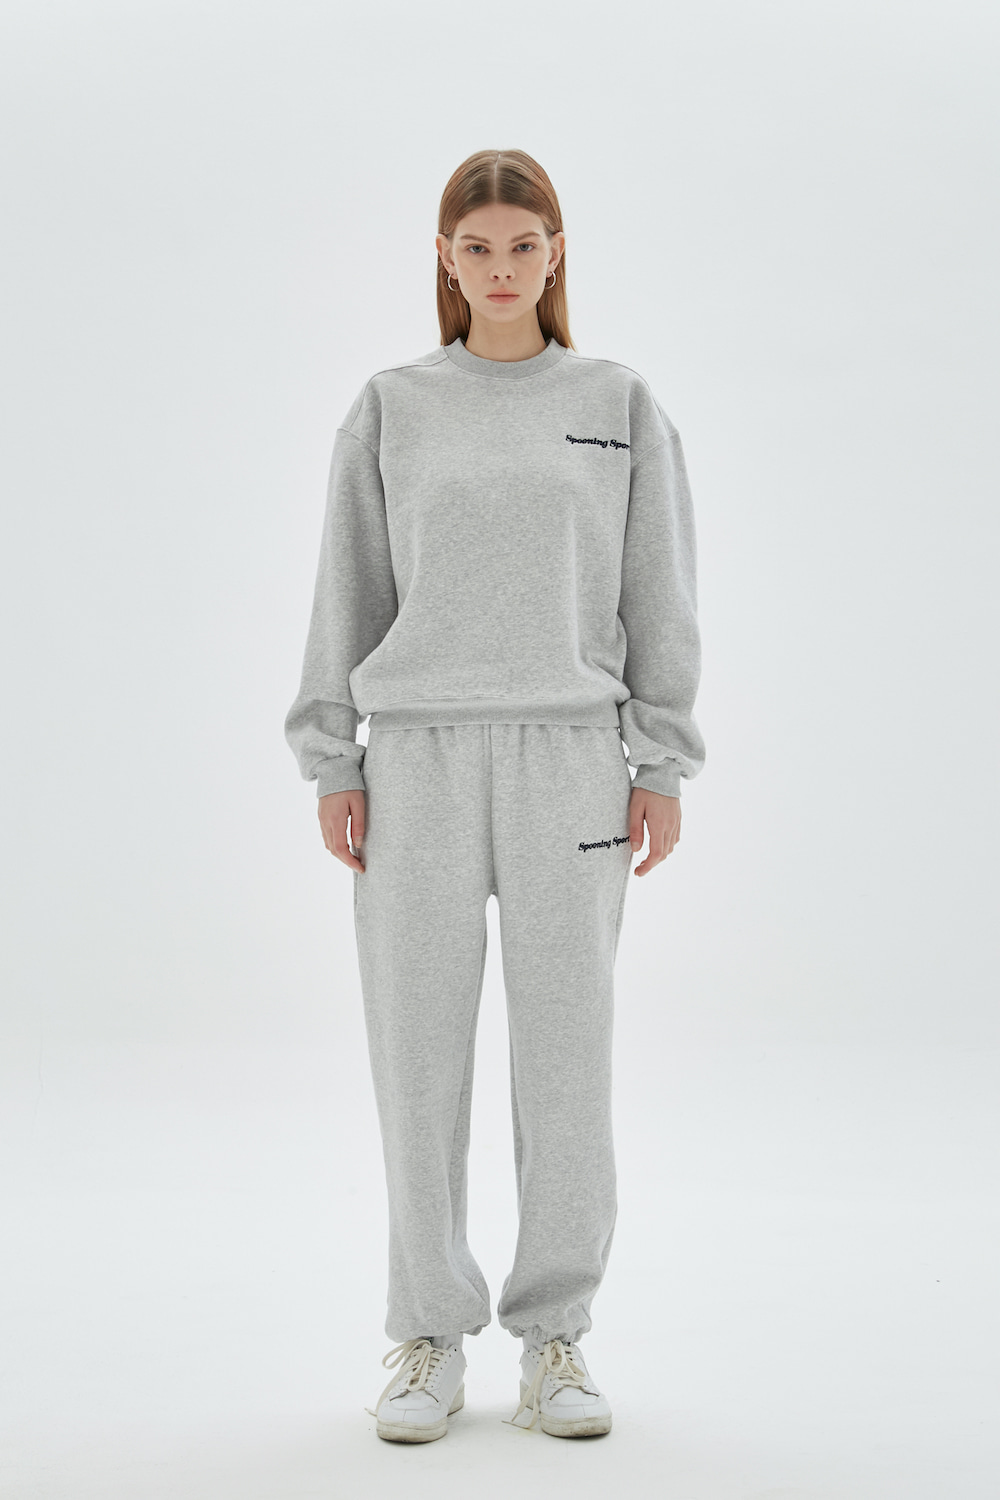 [DROP 5 / SHIP AFTER 1/29~]  SPOONING SPORT SWEATPANTS